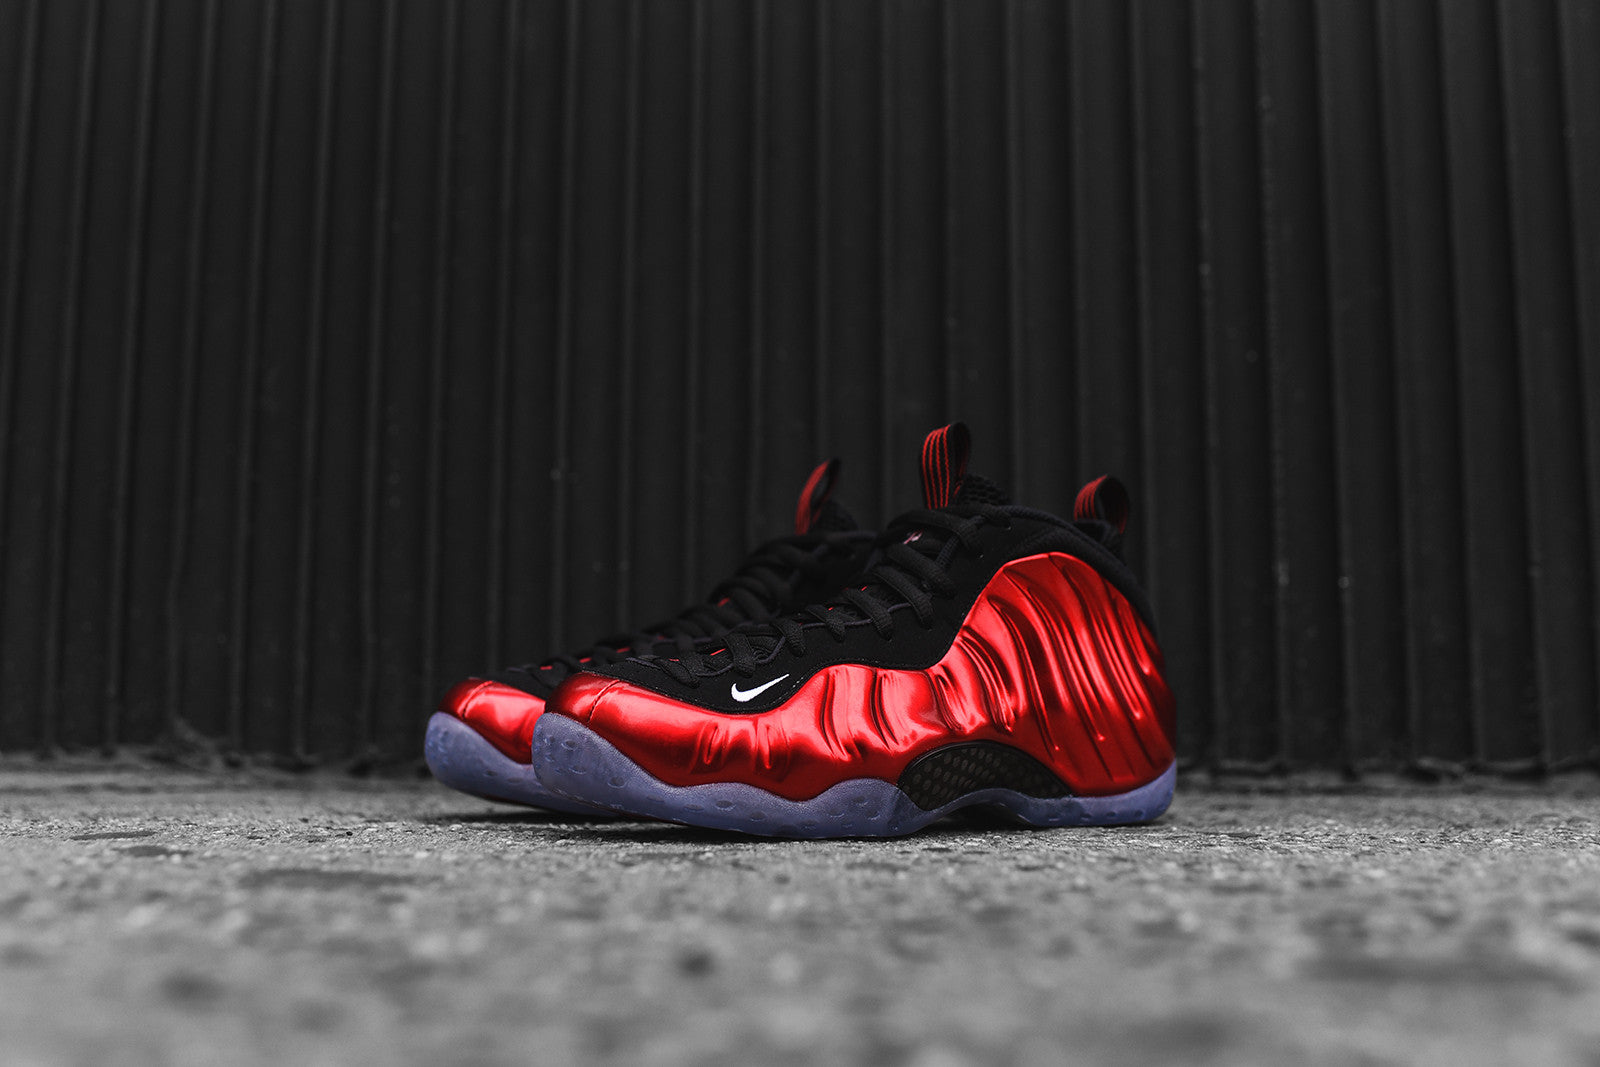 Nike Air Foamposite One Easter 2018 GS 846077004